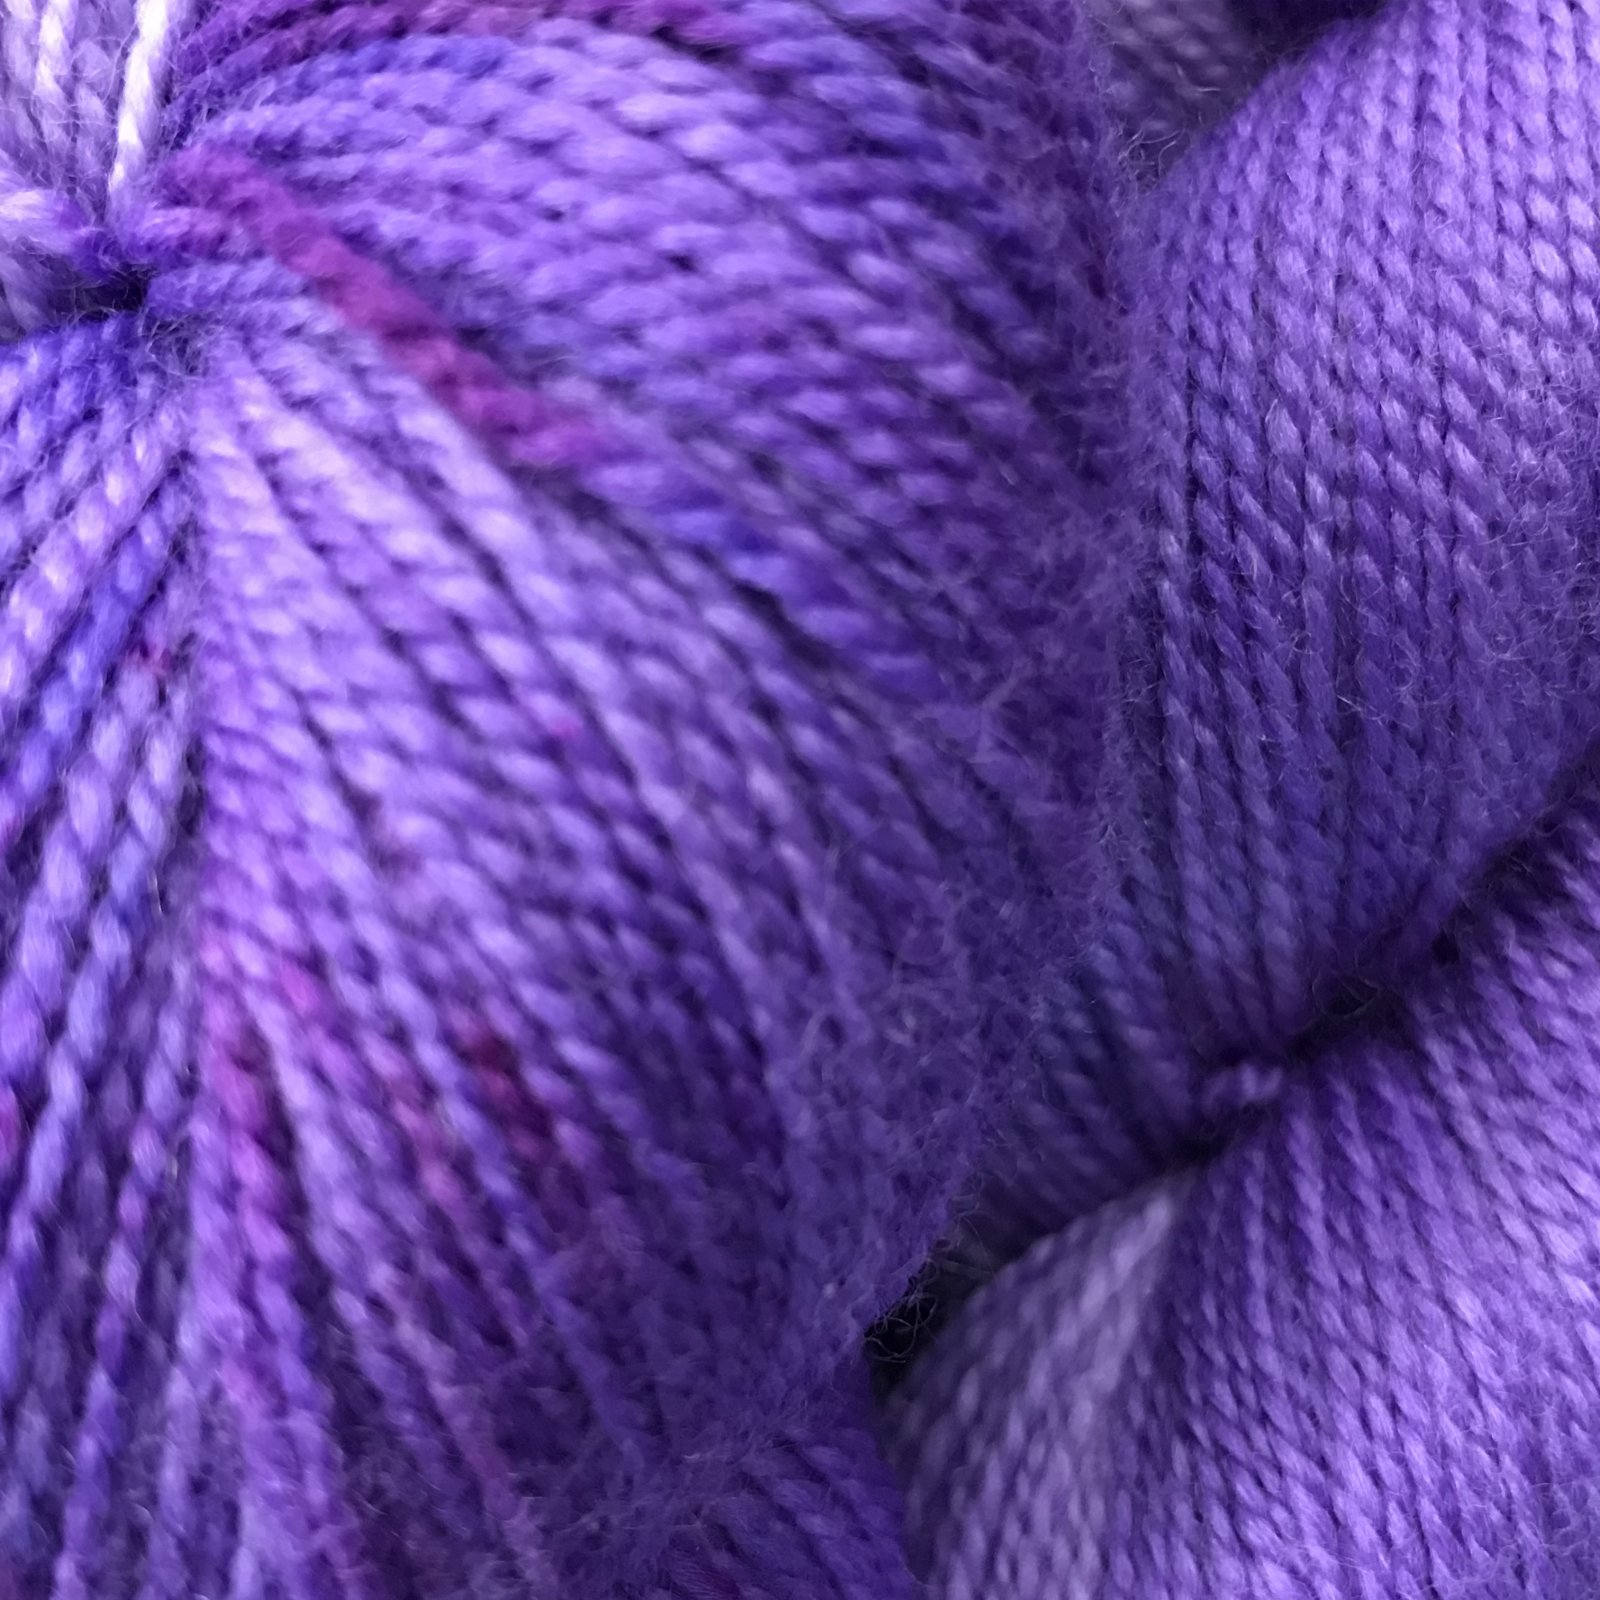 Stitch Together - Twisted Sock - Graple